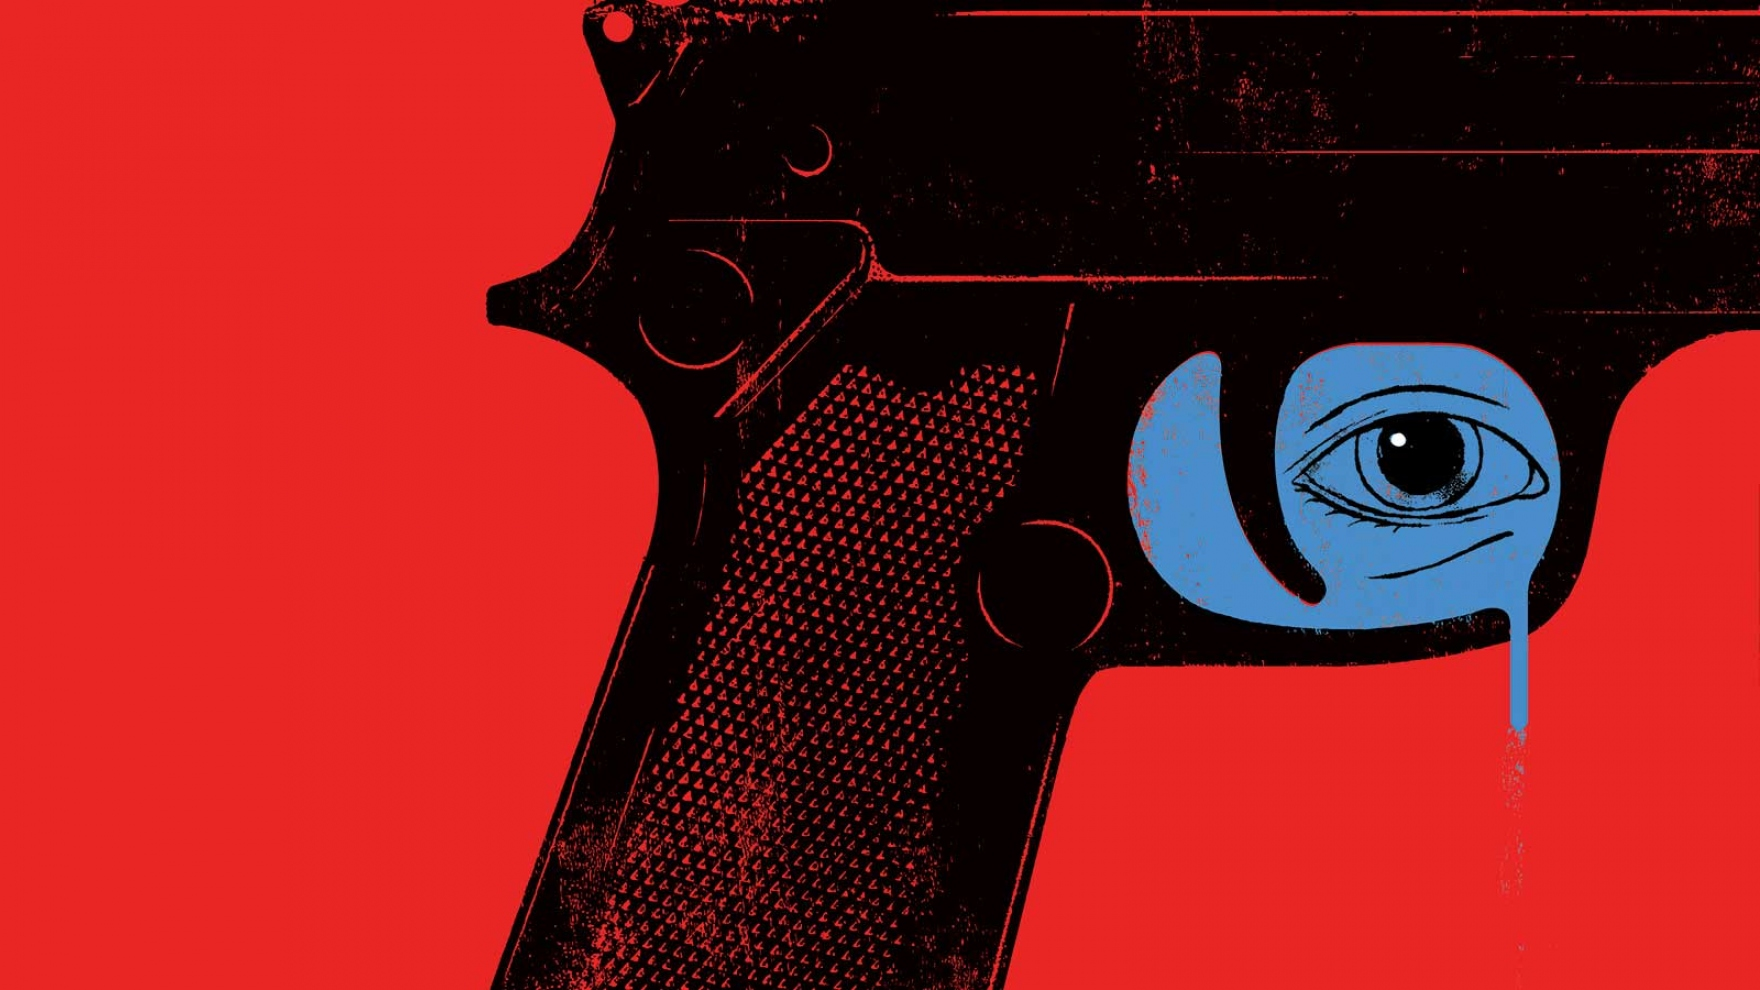 Illustration of a gun with crying eye in the trigger area